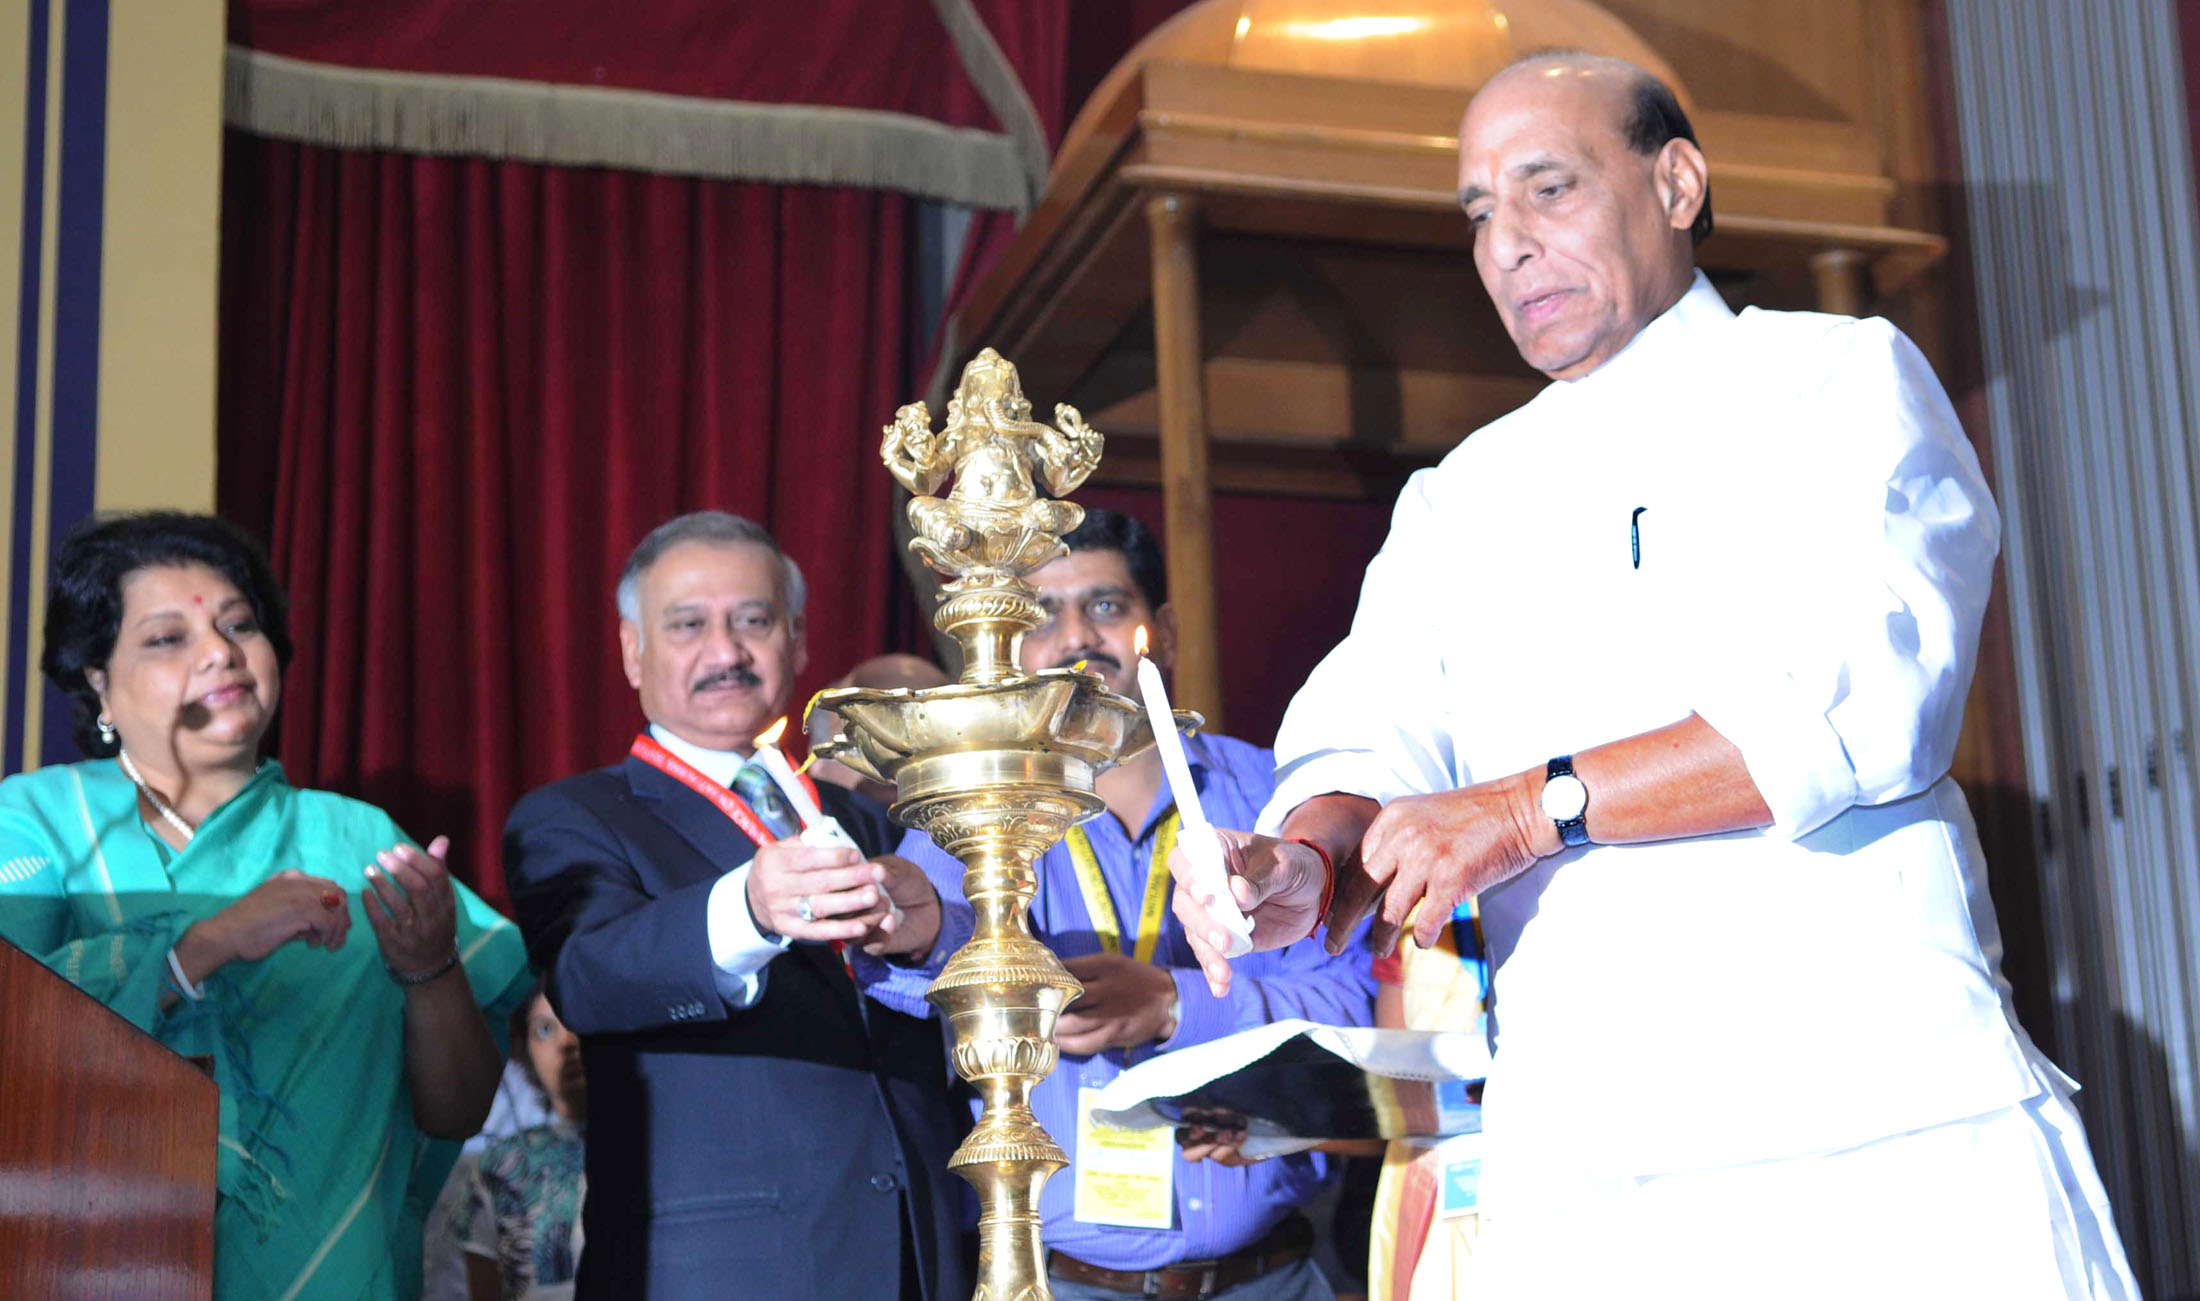 The Union Home Minister, Shri Rajnath Singh lighting the lamp to inaugurate the National Conference on Anti Human Trafficking, in New Delhi on October 07, 2015. The Director, CBI, Shri Anil Kumar Sinha is also seen.